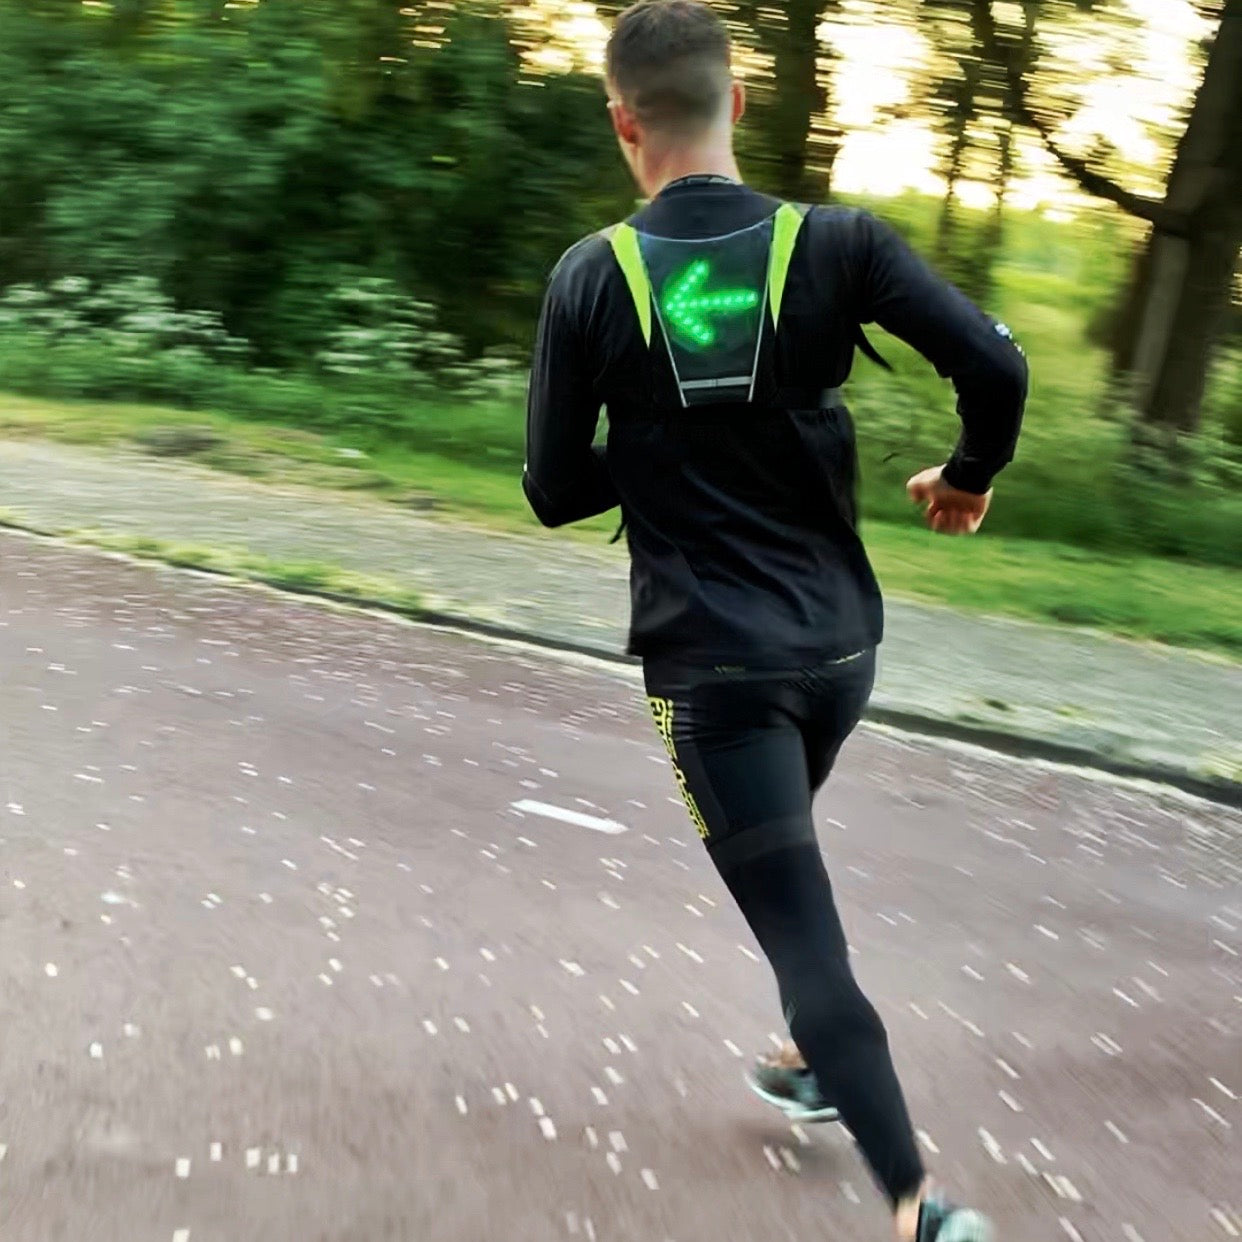 LedVest ™ | The World's Safest Running and Cycling Vest